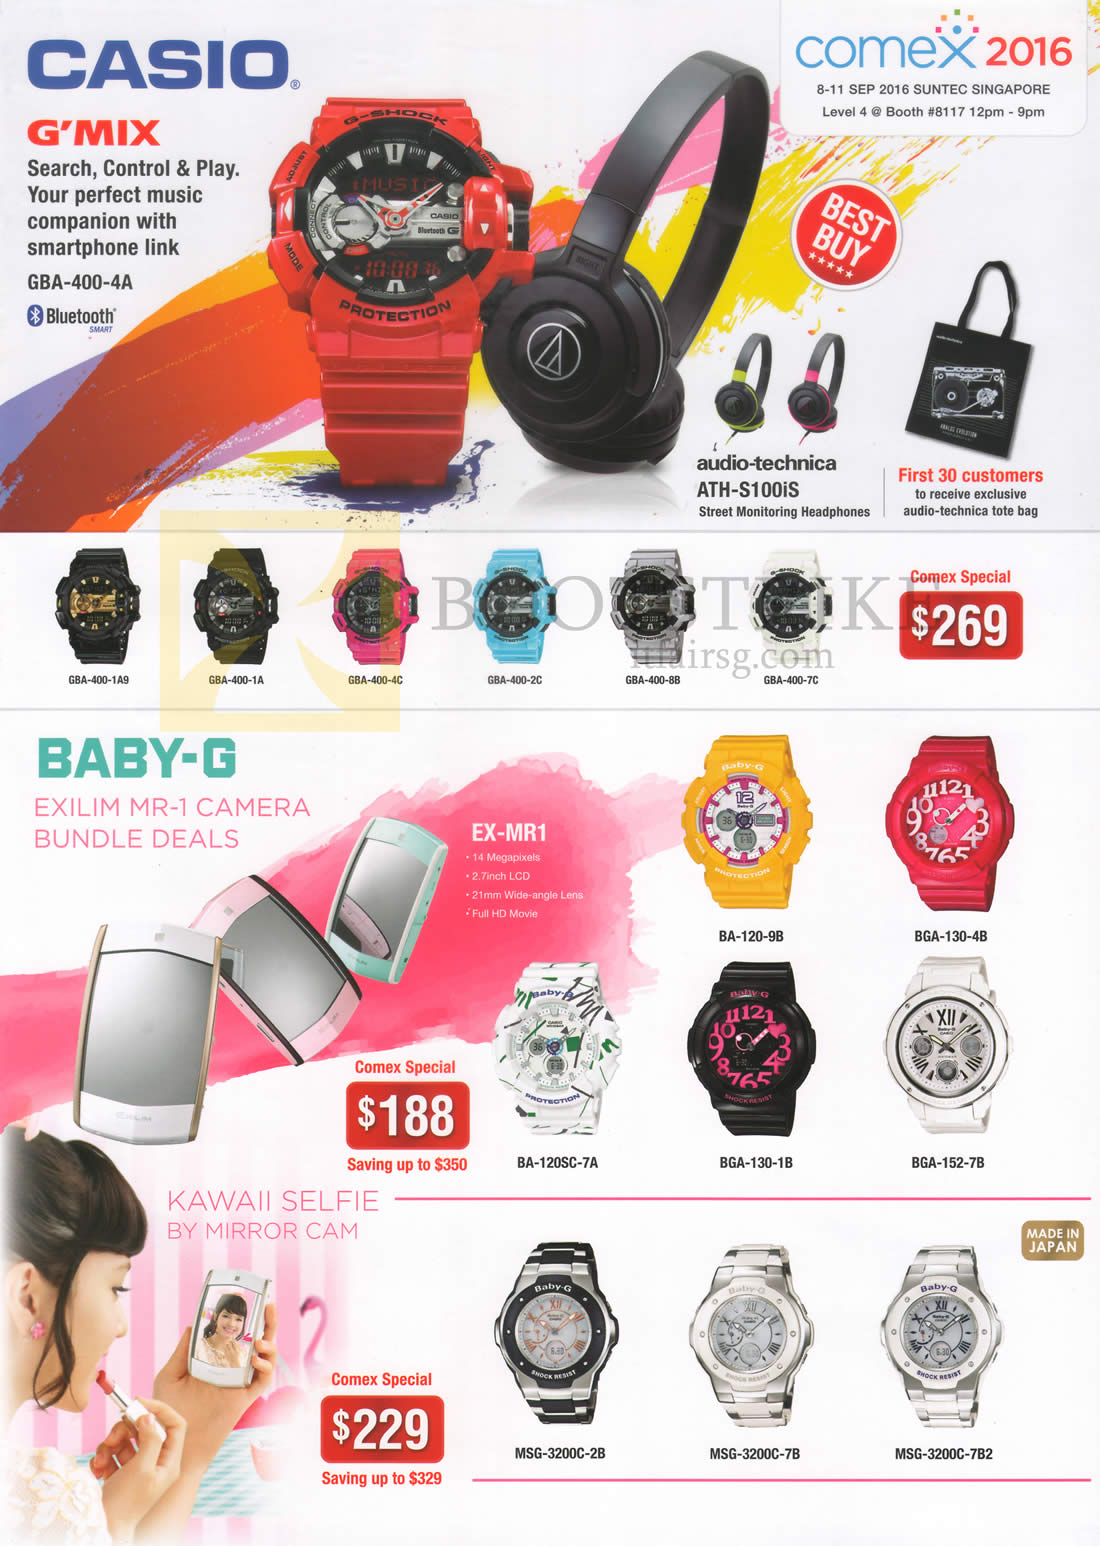 COMEX 2016 price list image brochure of Casio Watches, Camera, Mirror Cam, G Mix, Baby G, Kawaii Selfie, GBA, BA, MSG Series